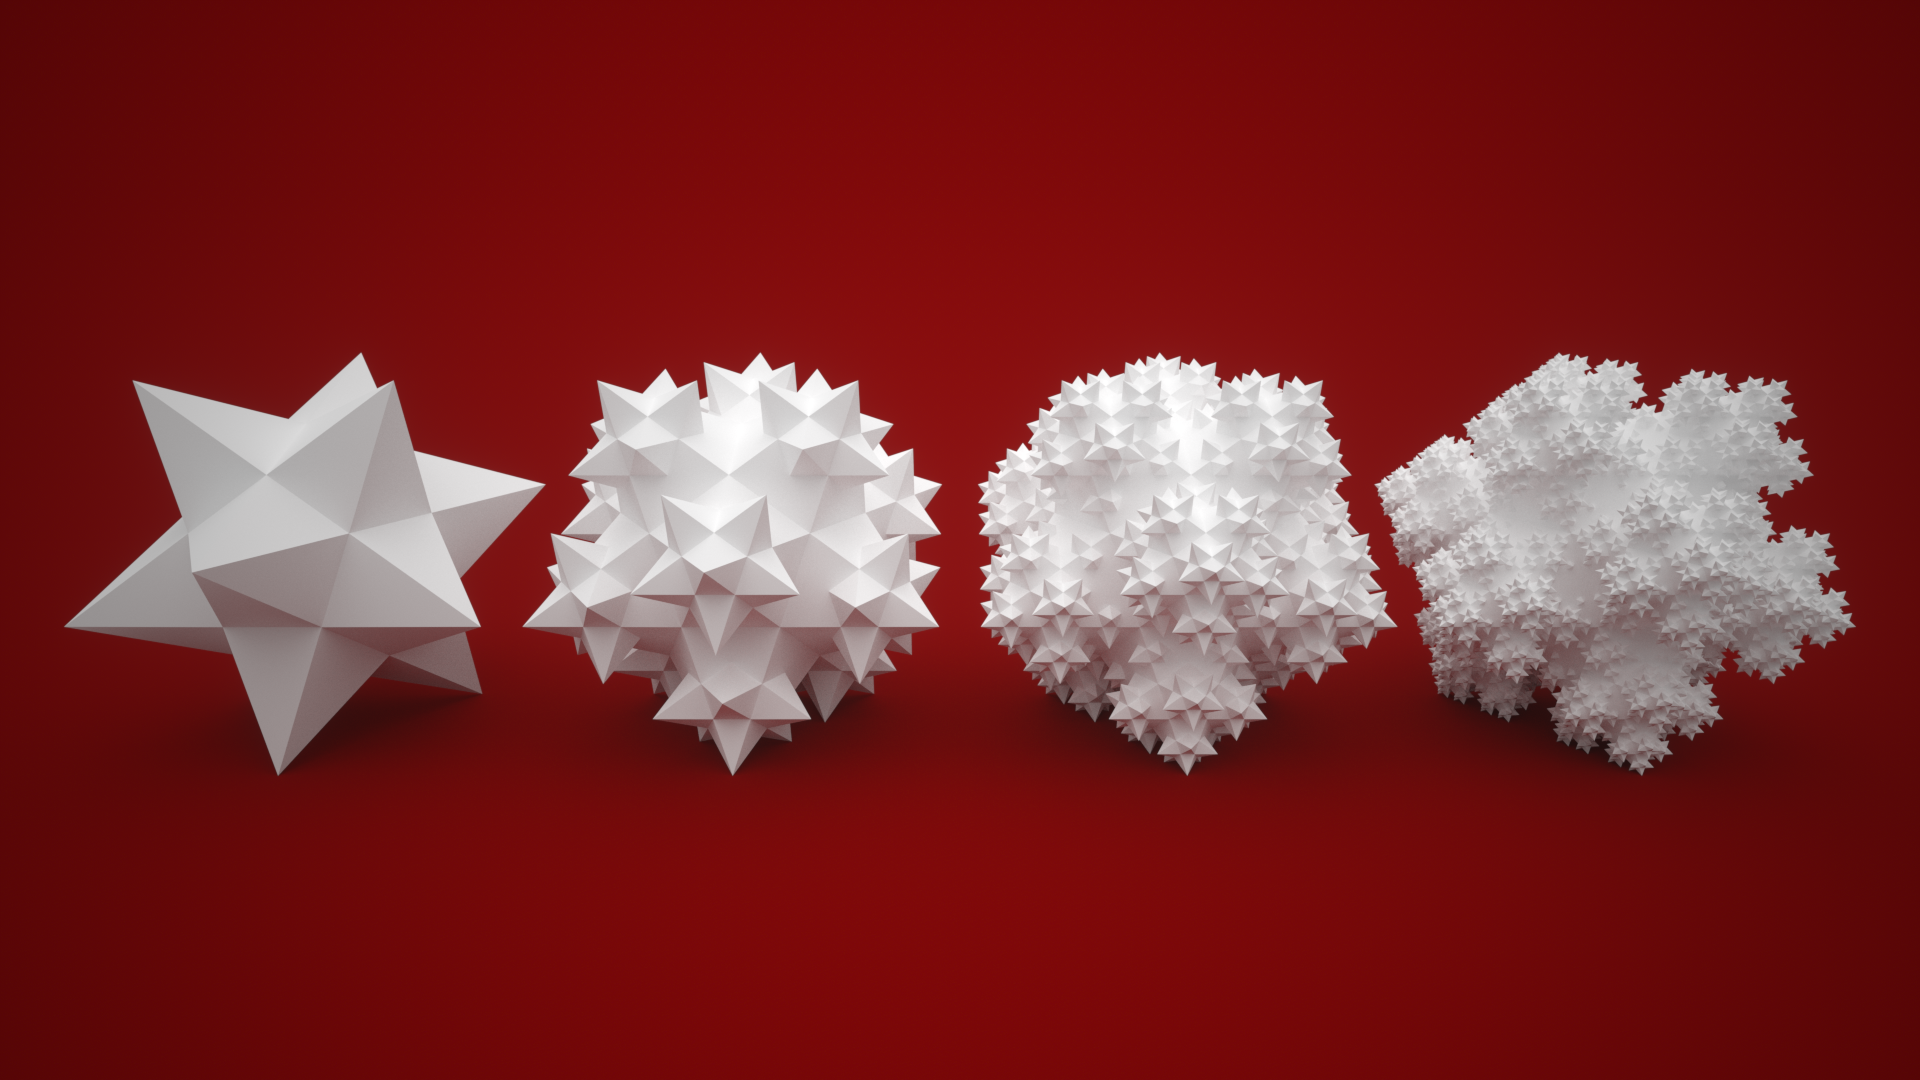 Small Stellated Dodecahedron Fractal by usere35